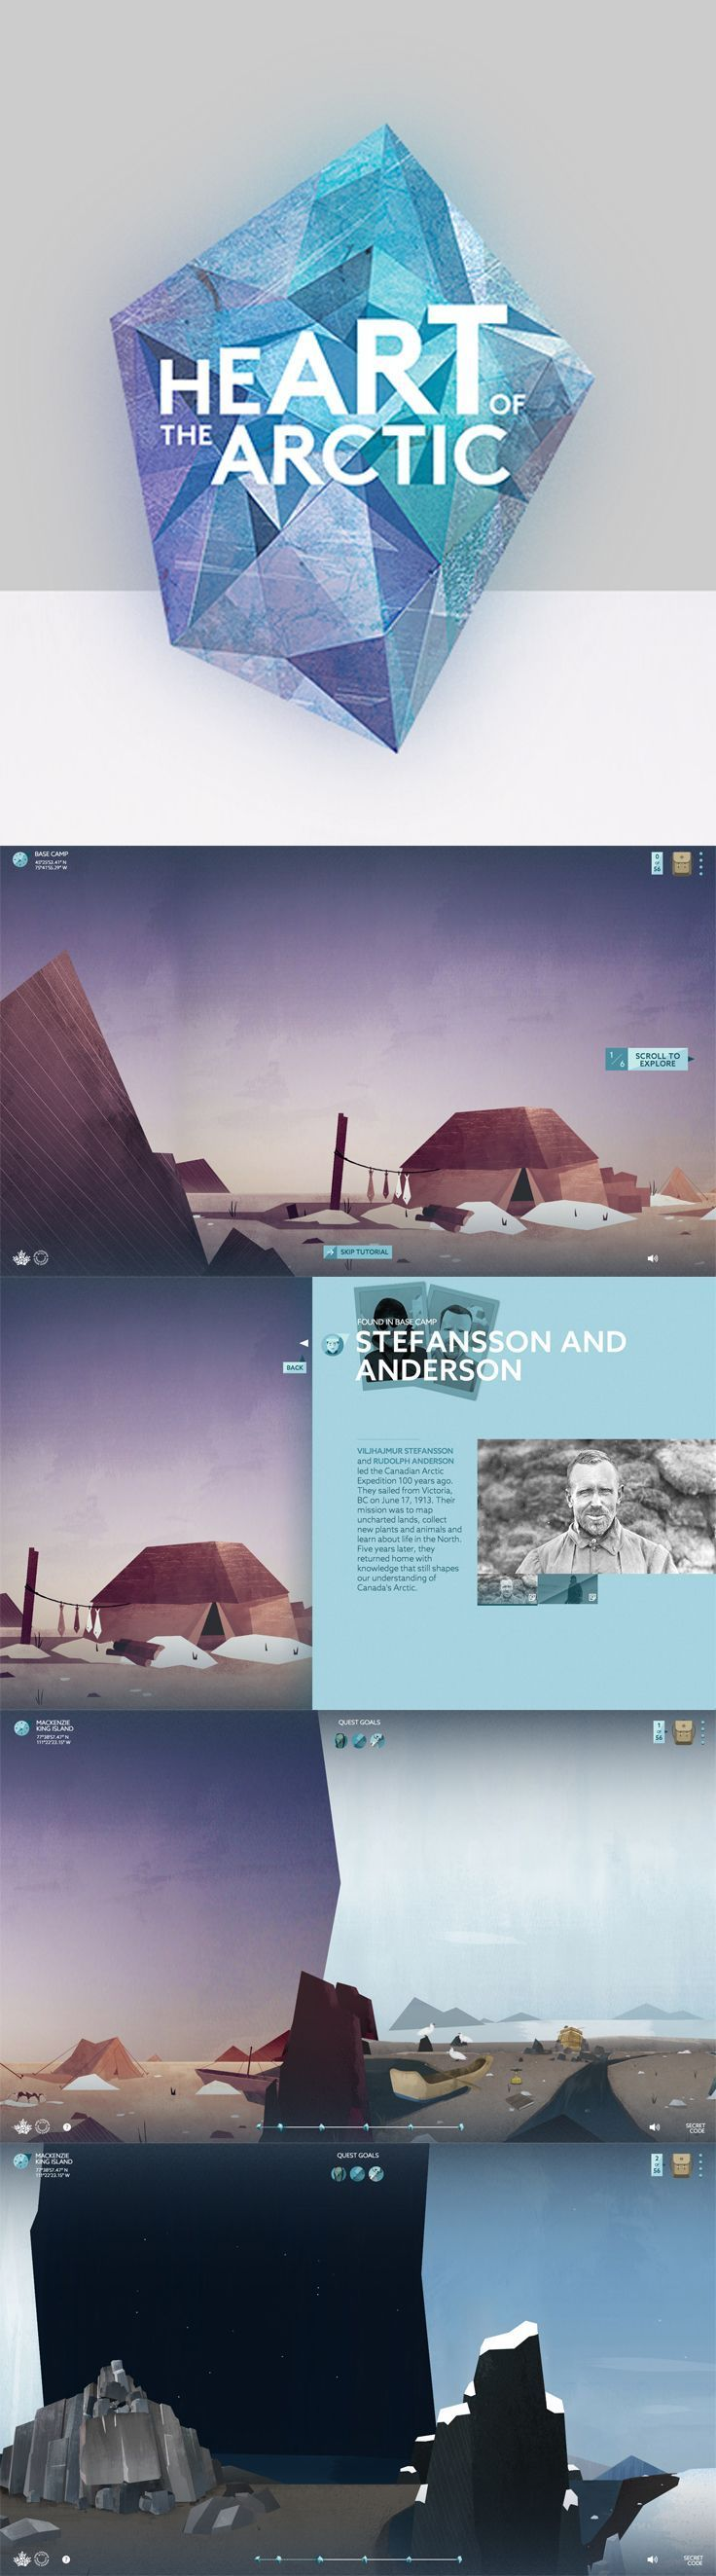 Heart of the Arctic #web #design #inspiration